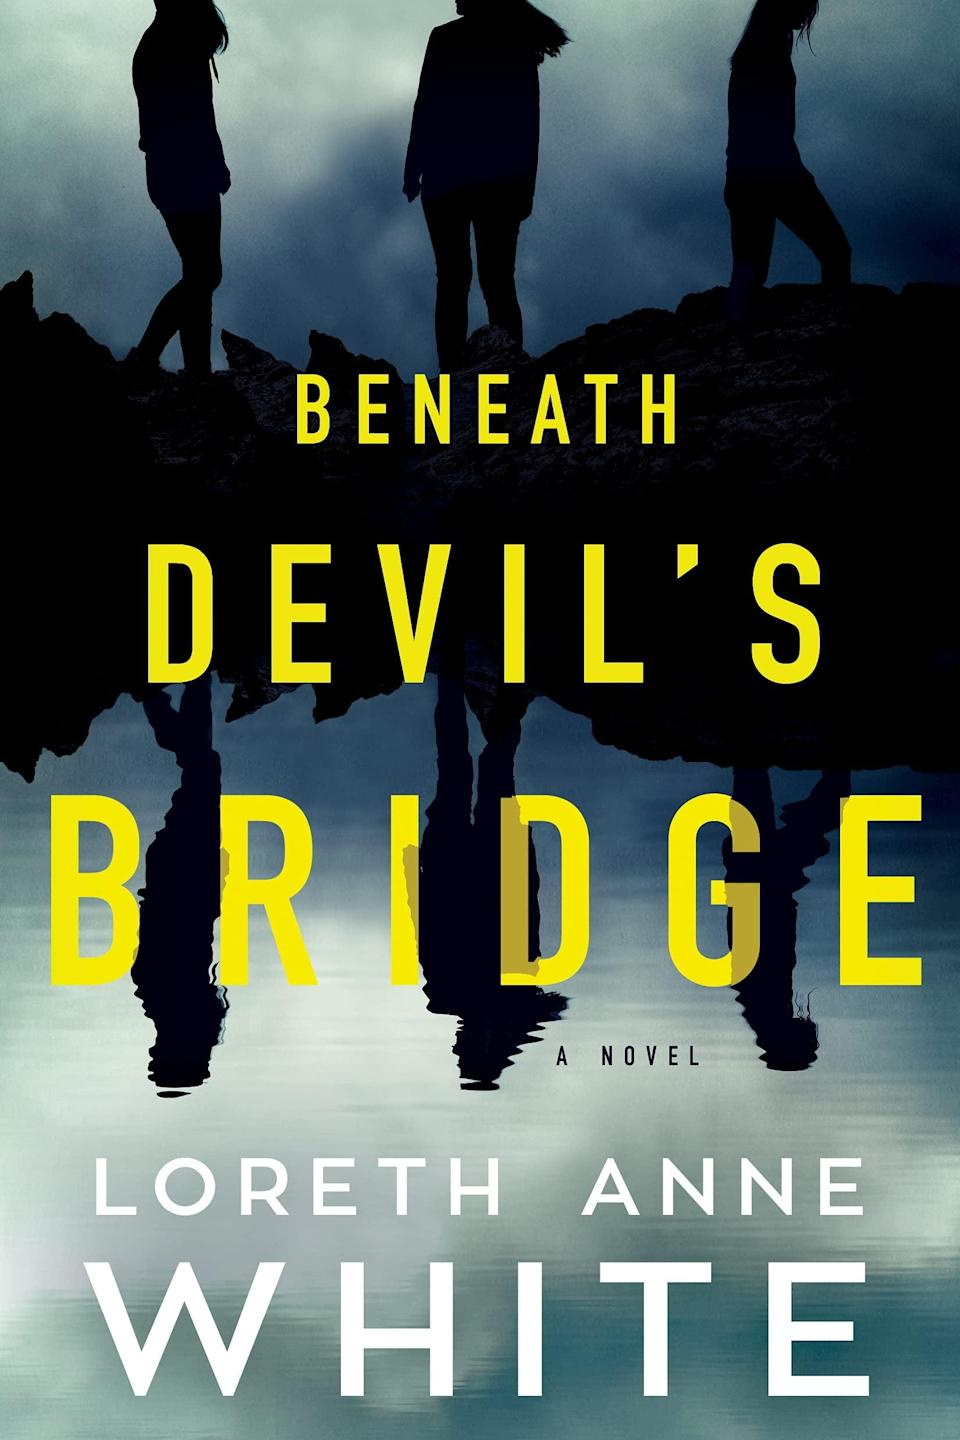 <p>True crime fans, <span><strong>Beneath Devil's Bridge</strong></span> by Loreth Anne White is the one thriller you need to read this month. True crime podcaster Trinity Scott is on the verge of major success when she decides to delve into the case of Clayton Jay Pelley, a former guidance counselor who confessed to murdering one of his students. Now, two decades later, Clayton is recanting his story, and putting Trinity in a dangerous situation in the process. </p> <p><em>Out June 1</em></p>